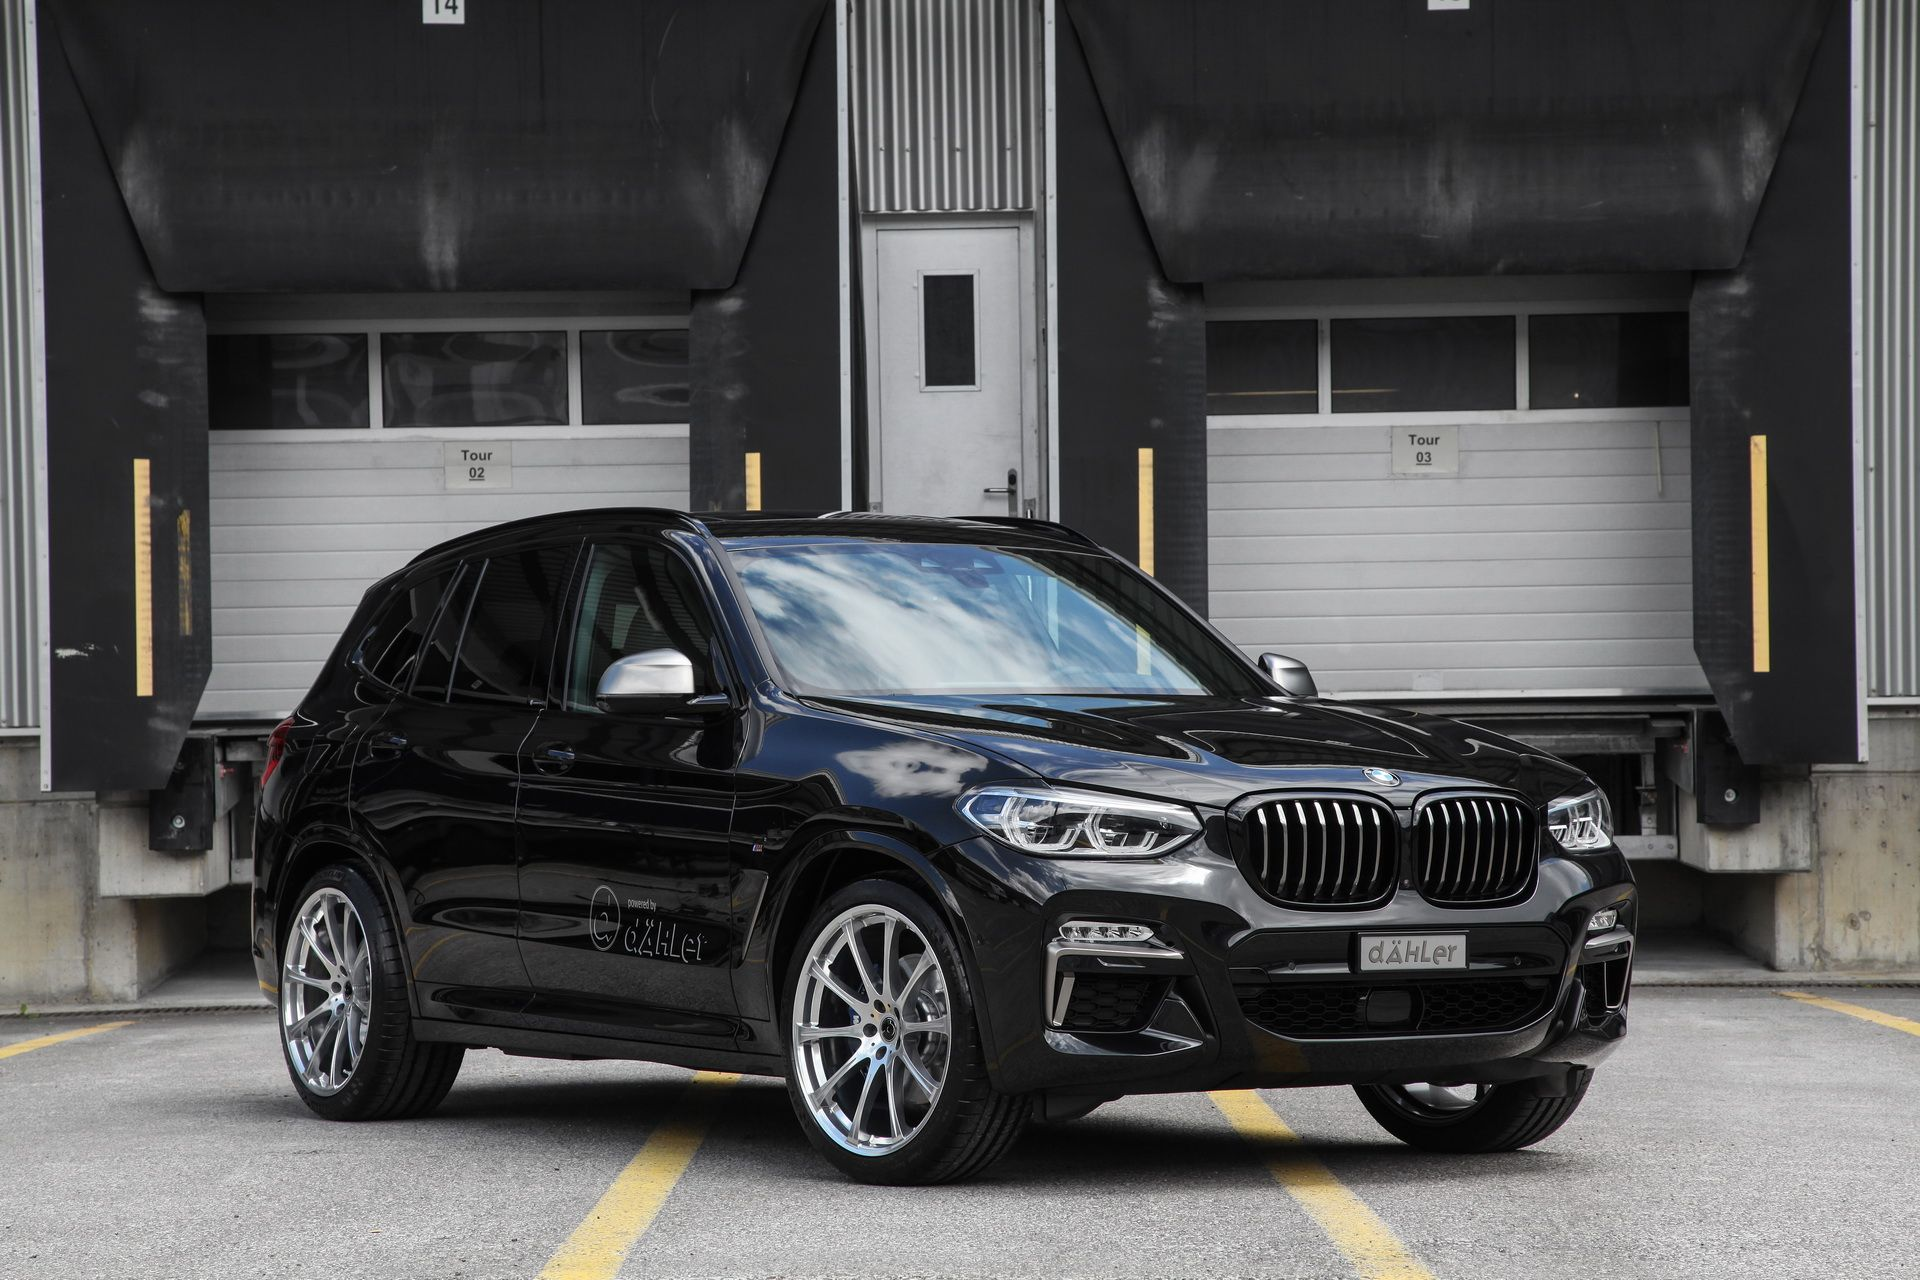 BMW_X3_M40i_by_Dahler_0014